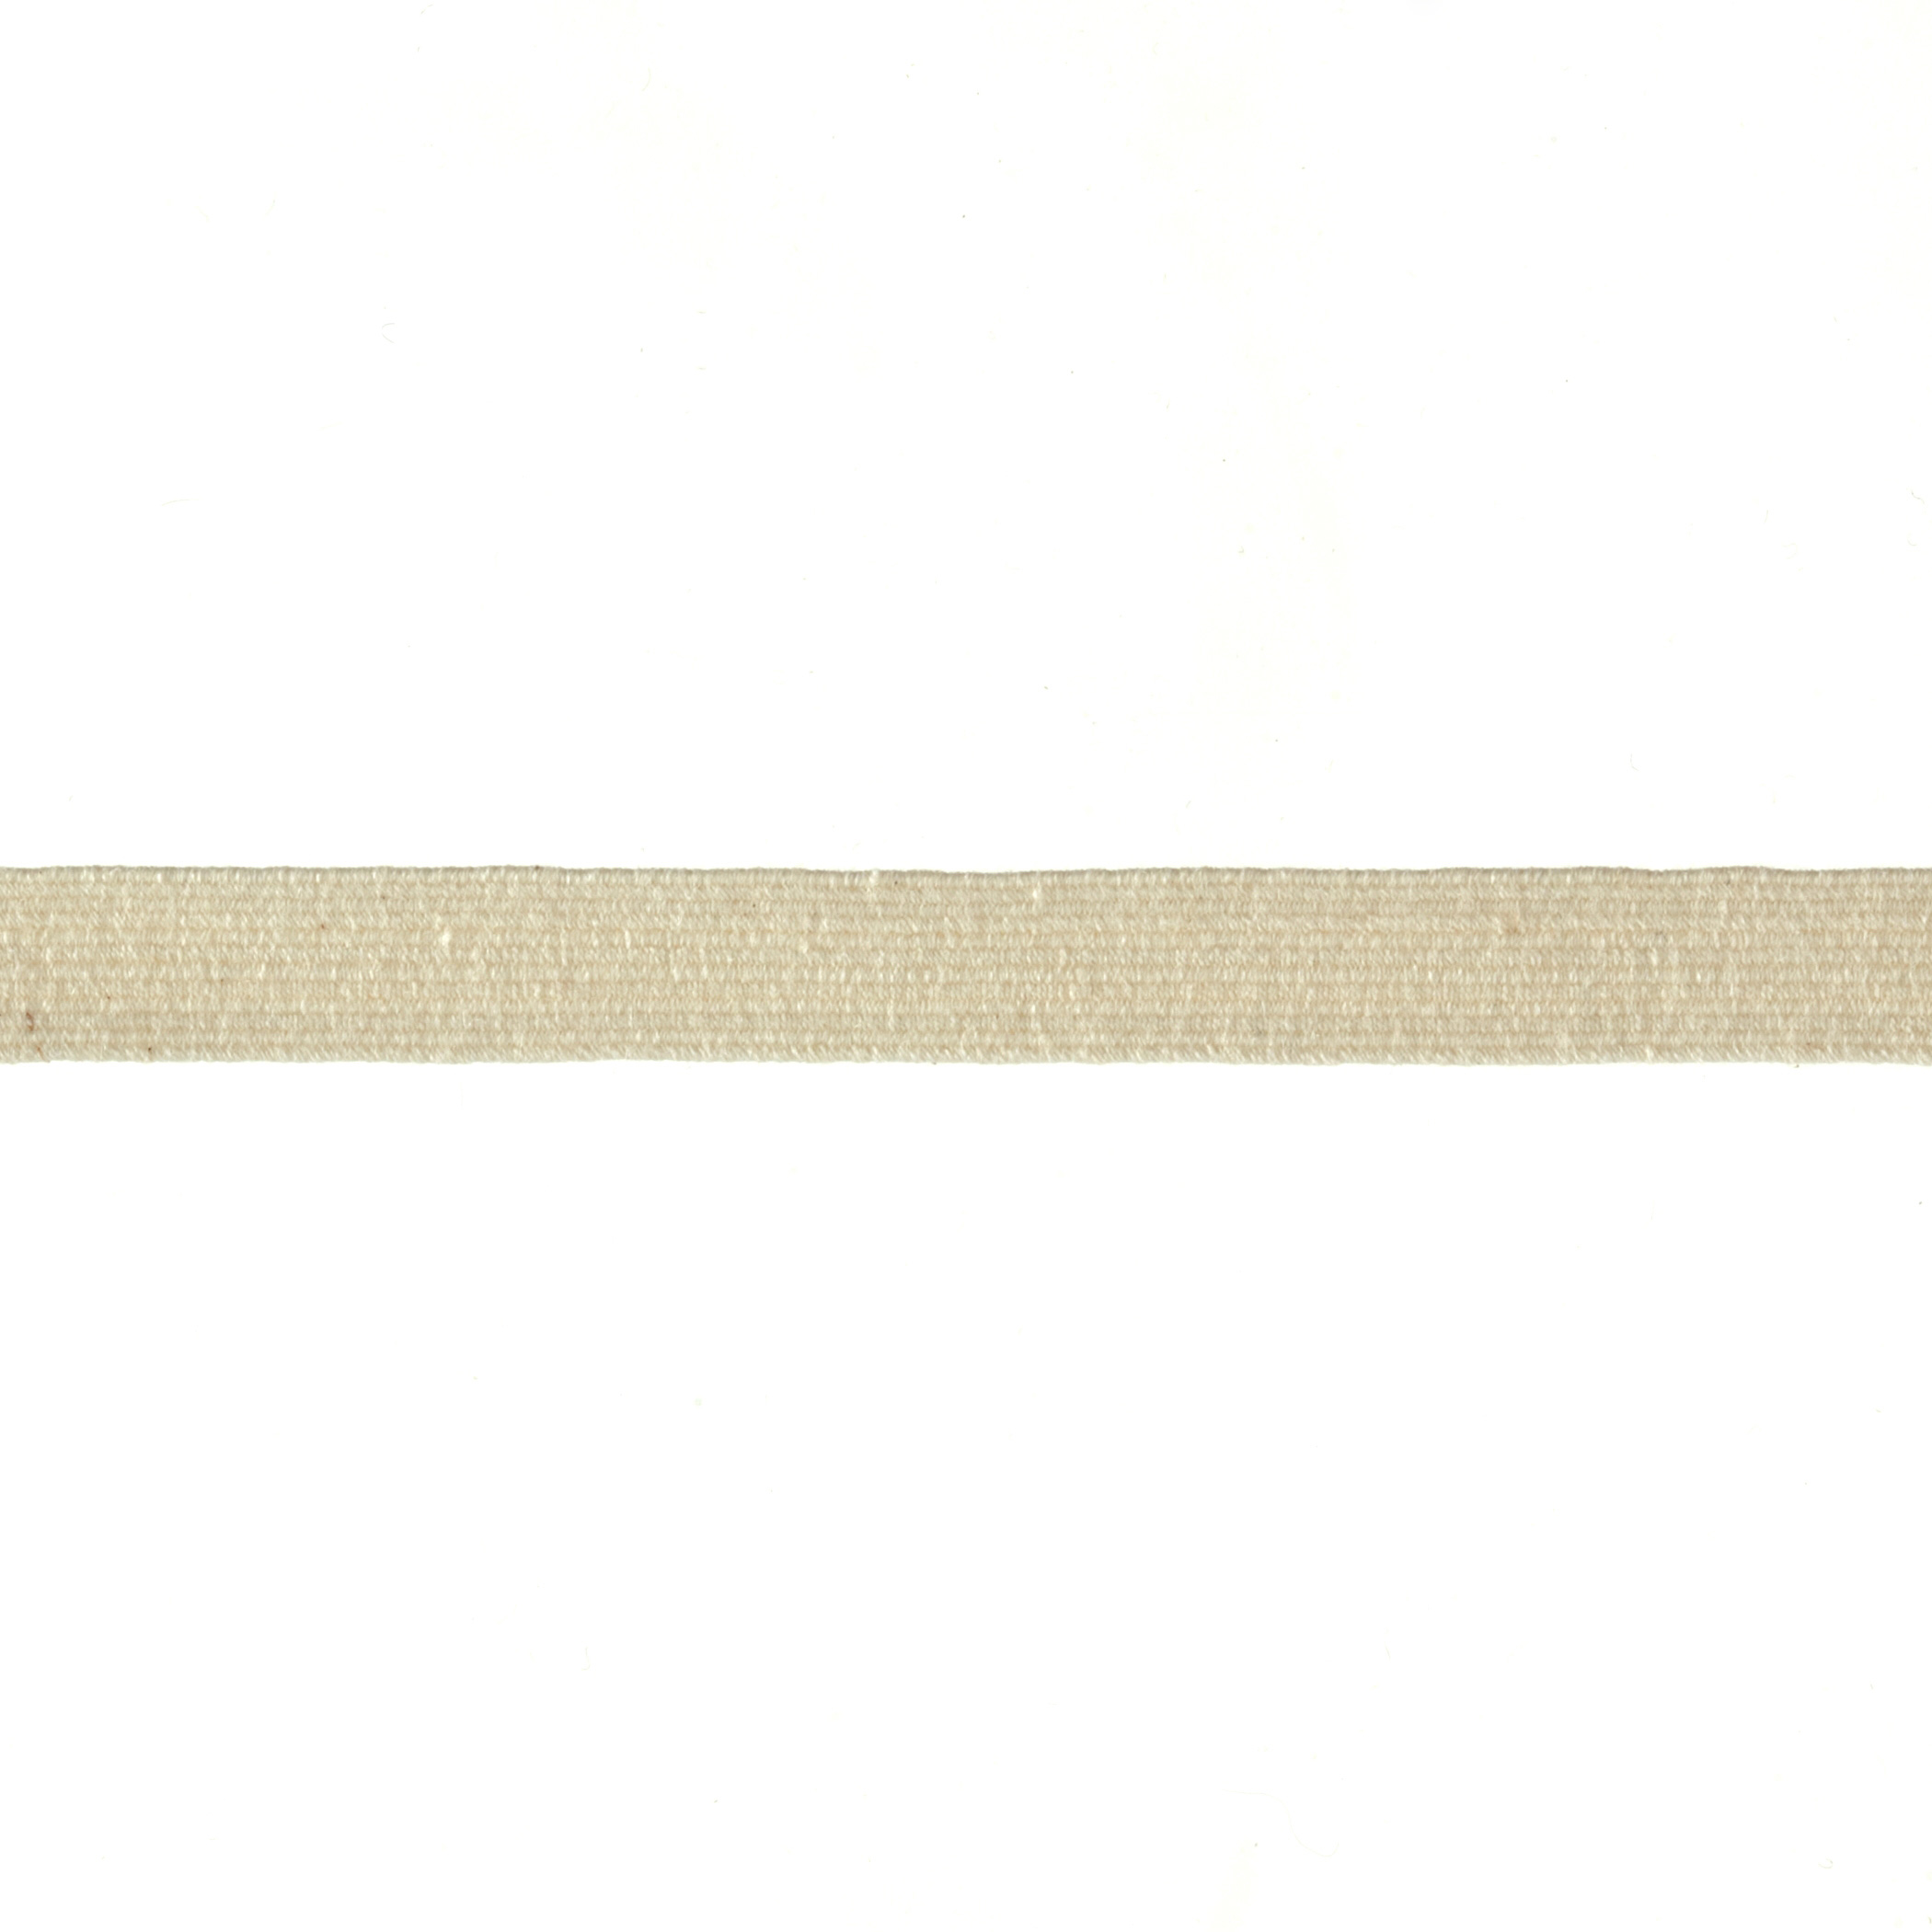 3/8'' Cotton Swimwear Elastic Natural - By the